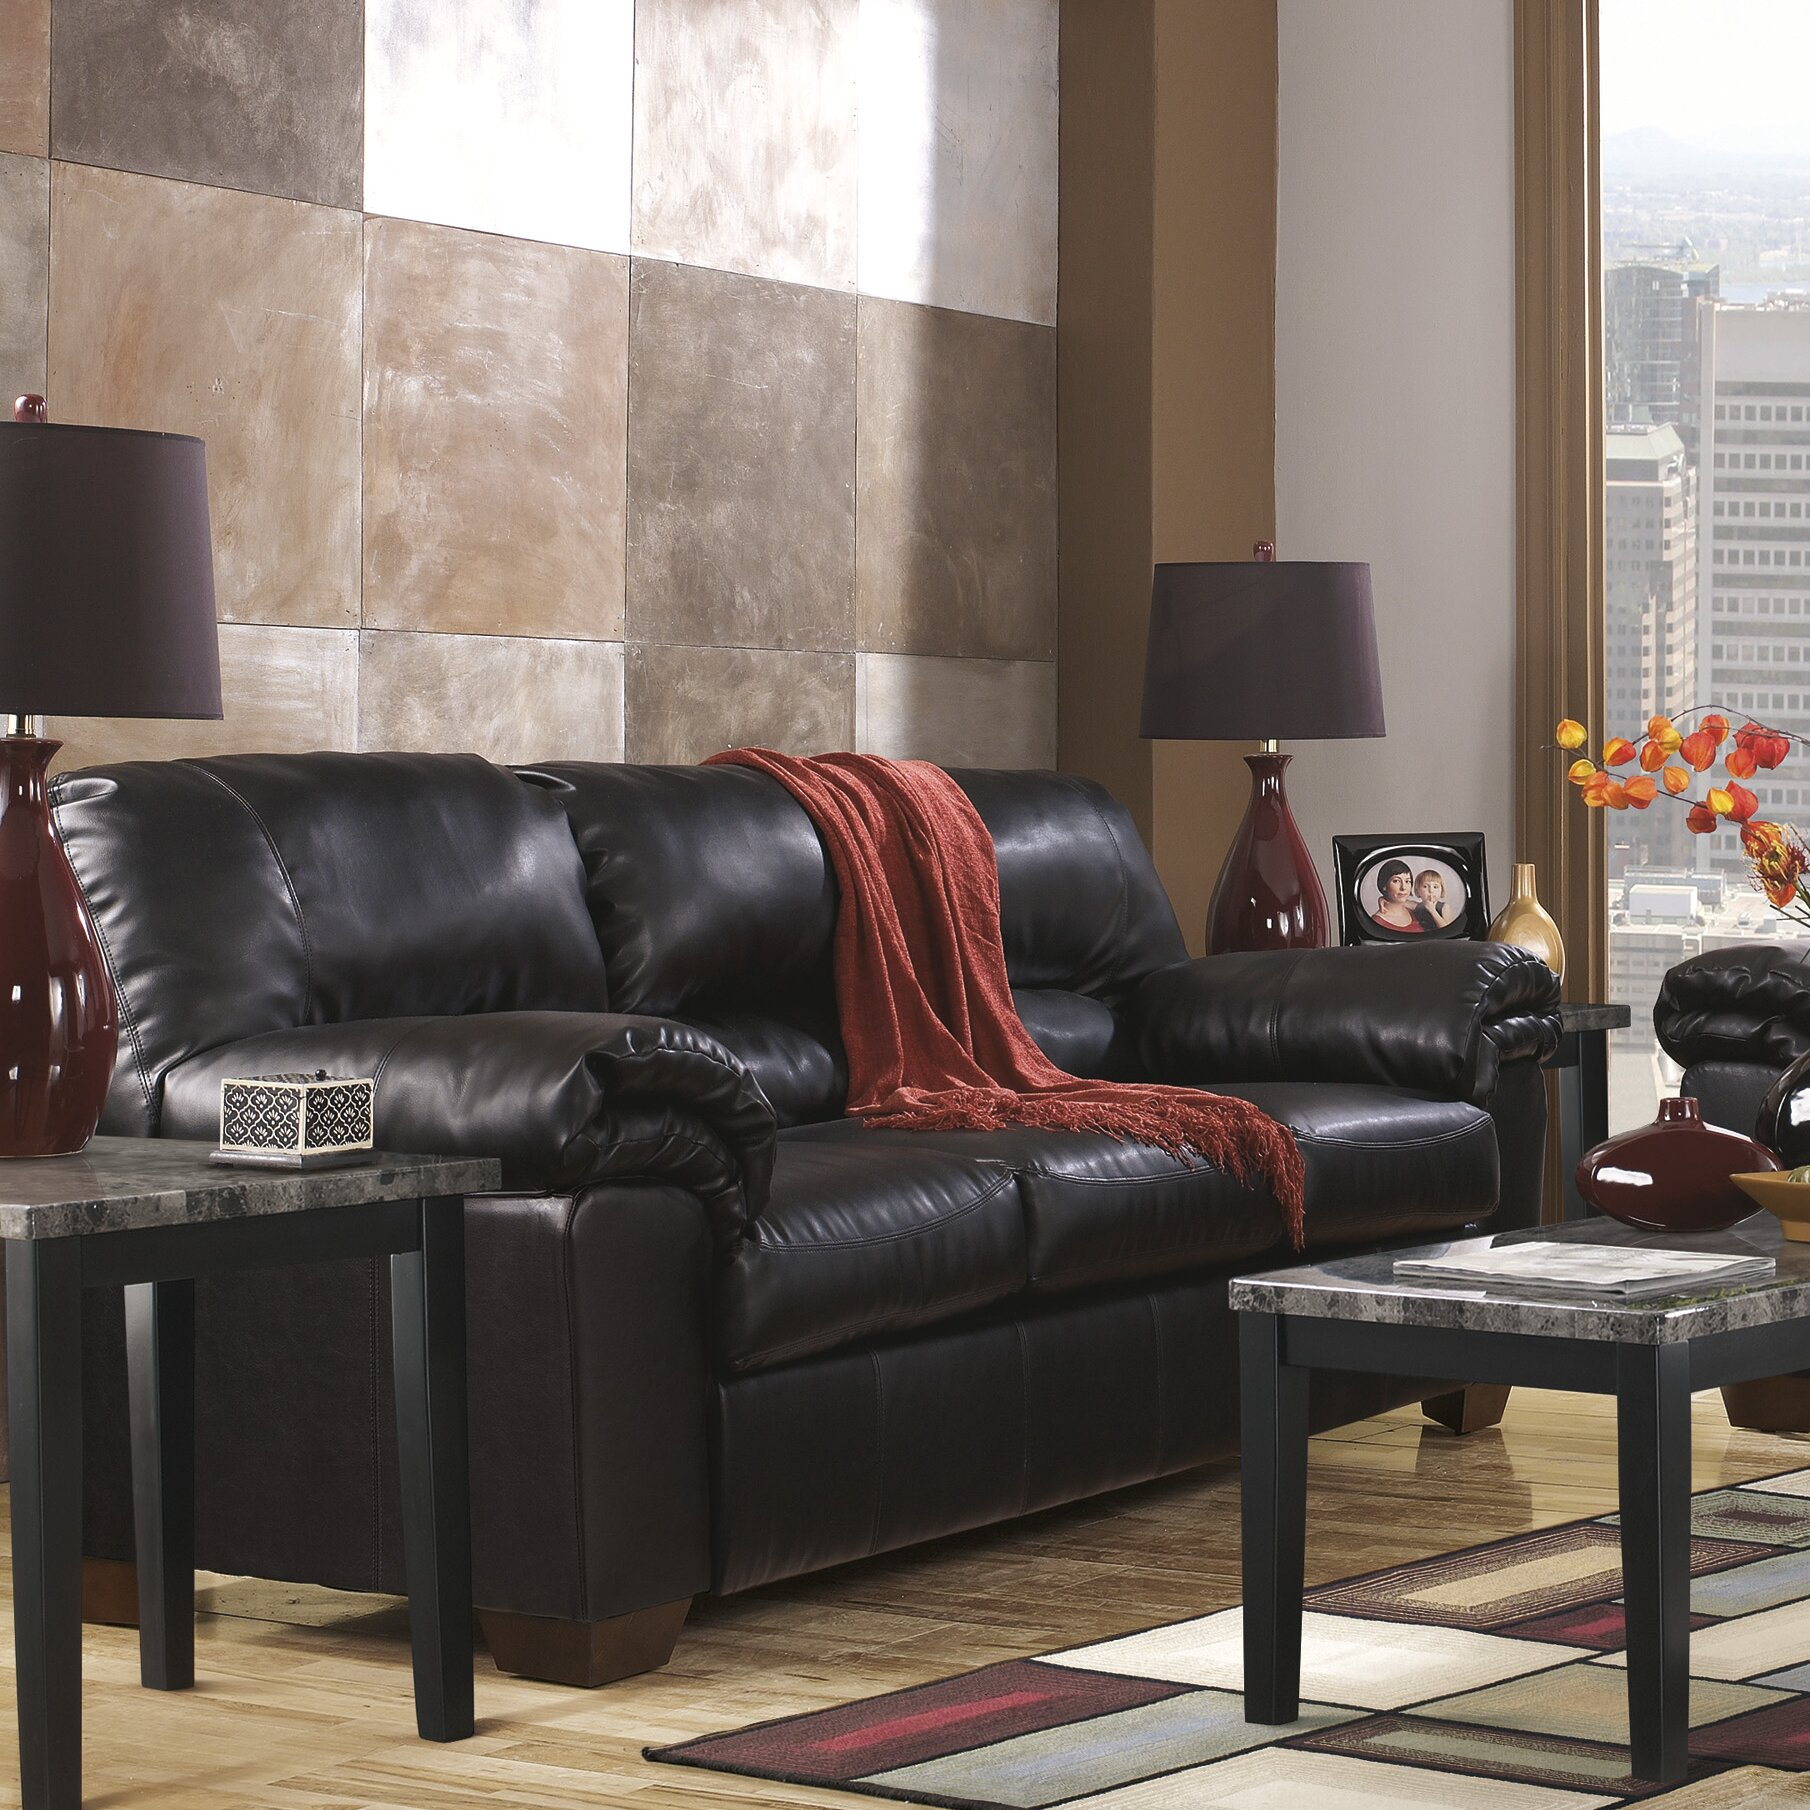 Ashley Signature Collection: Signature Design By Ashley Rosa Living Room Collection